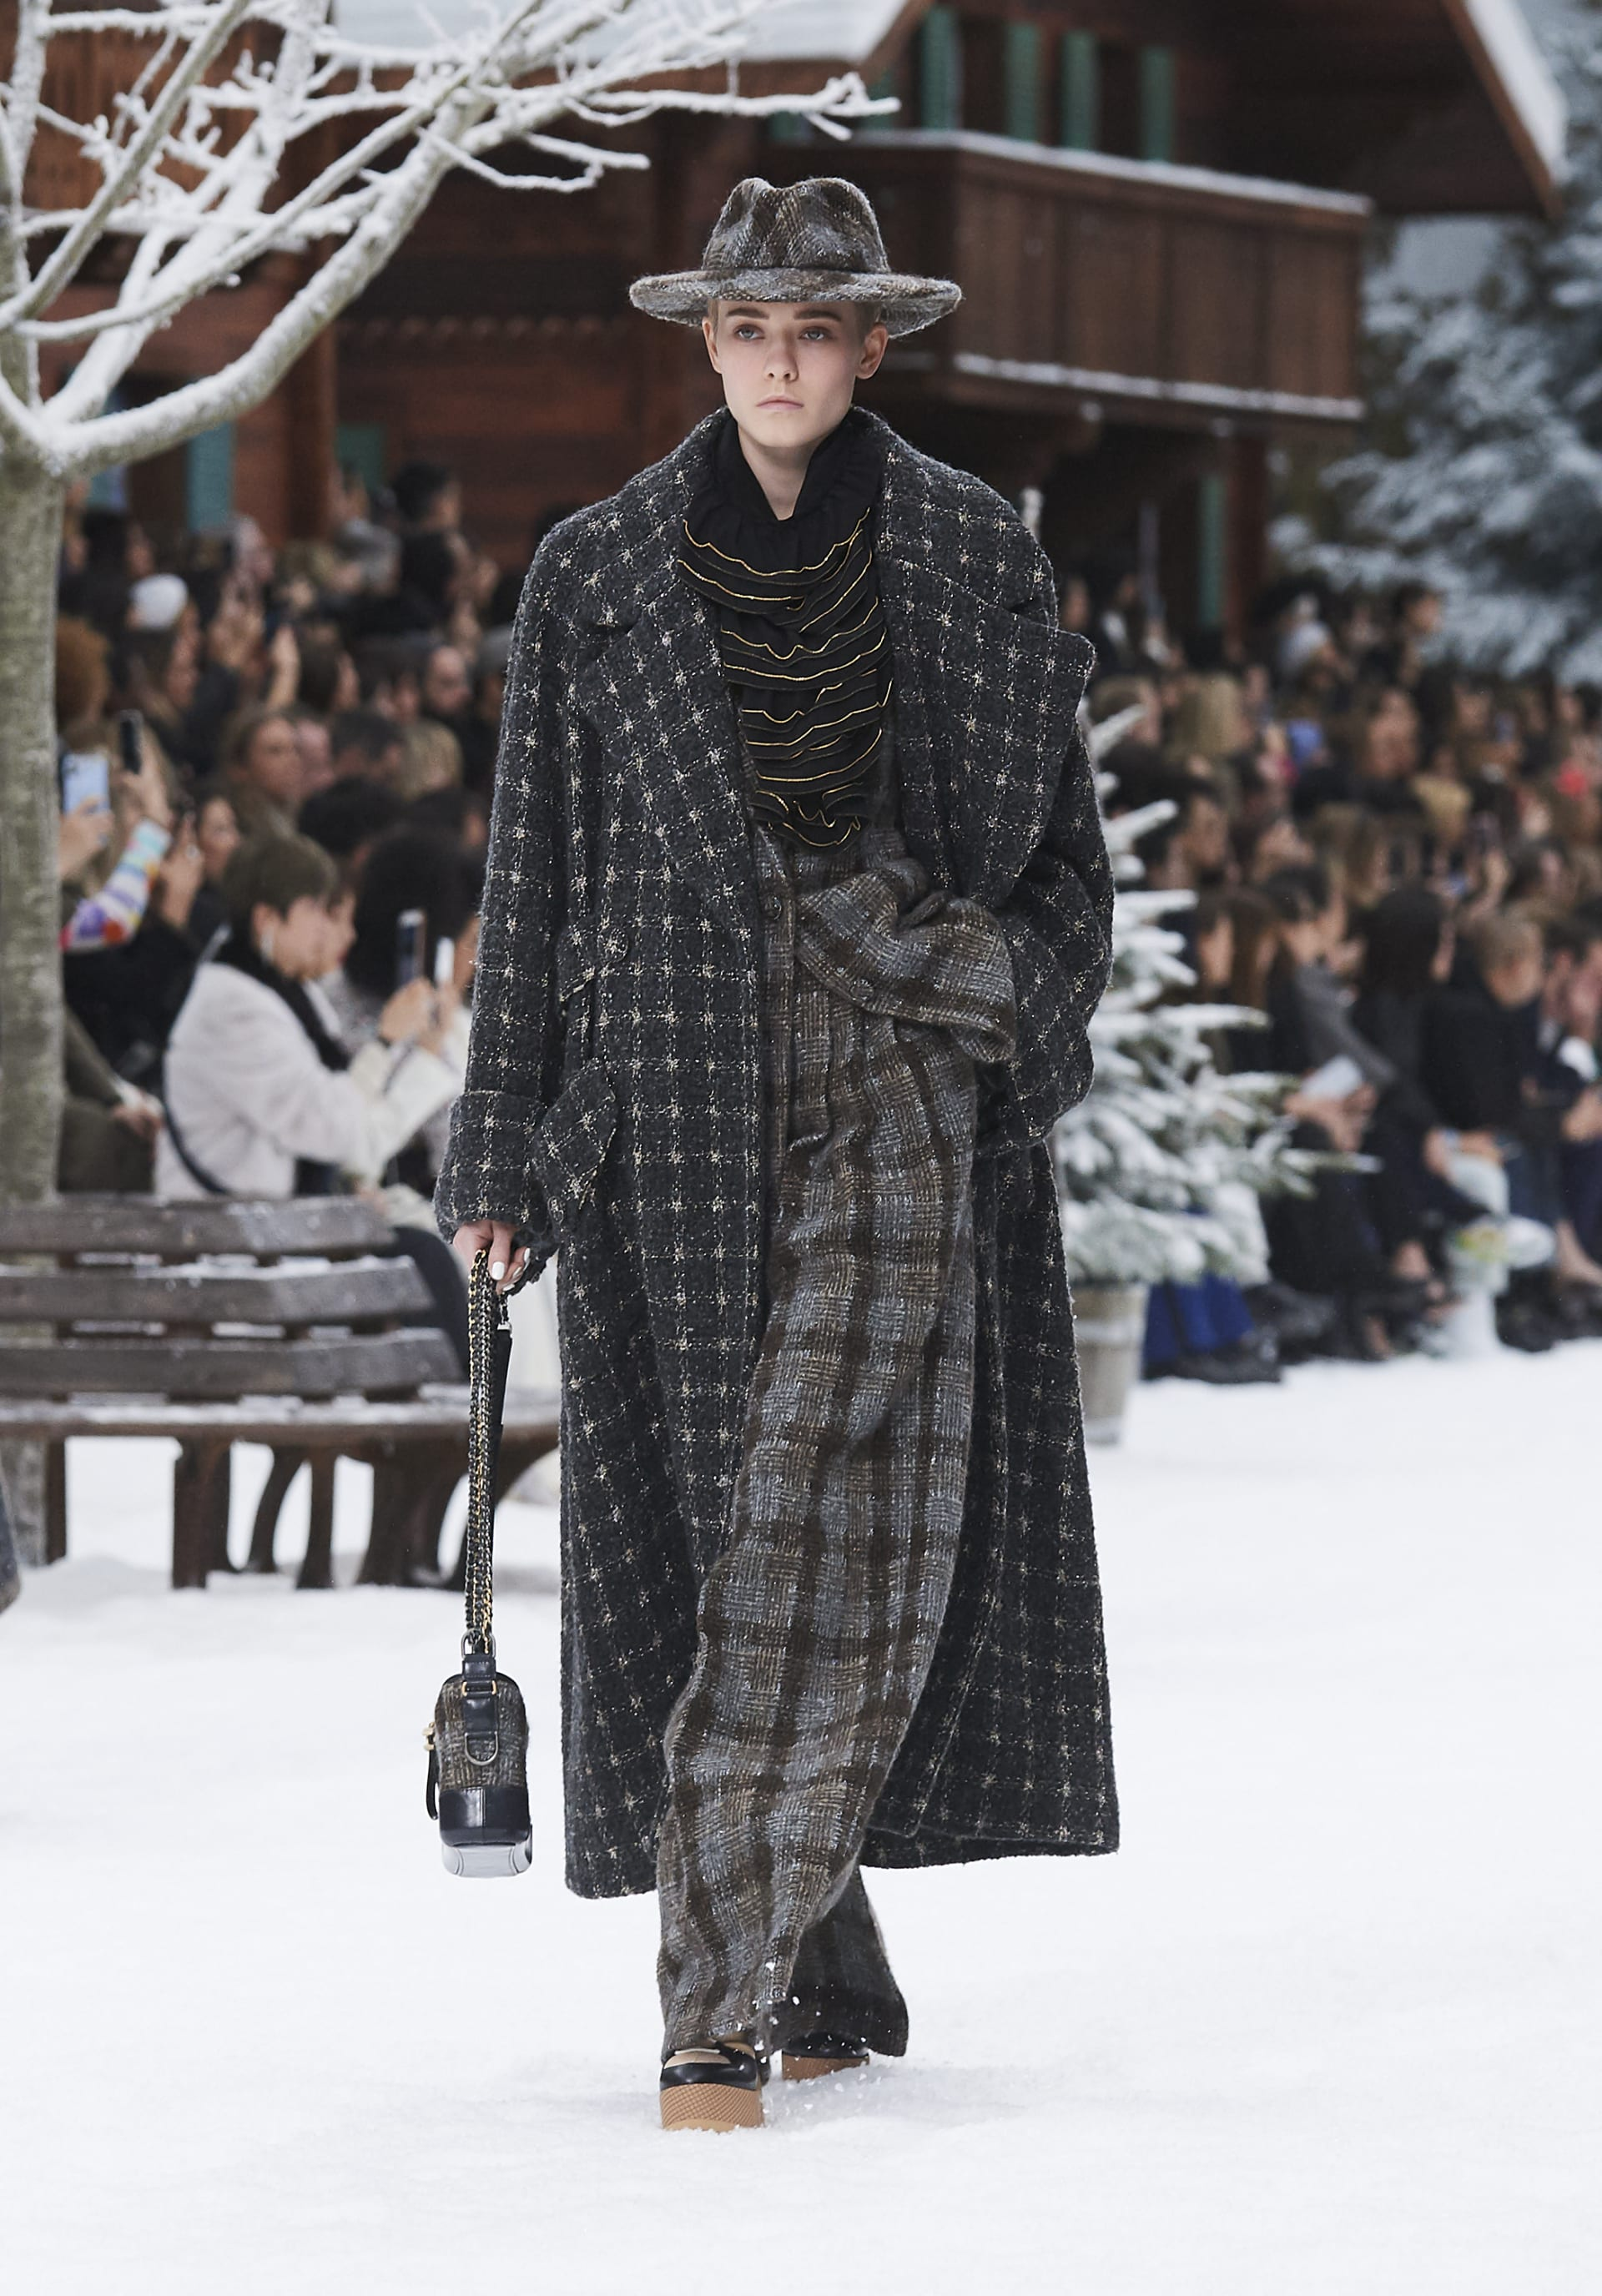 View 1 - Look 3 - Fall-Winter 2019/20